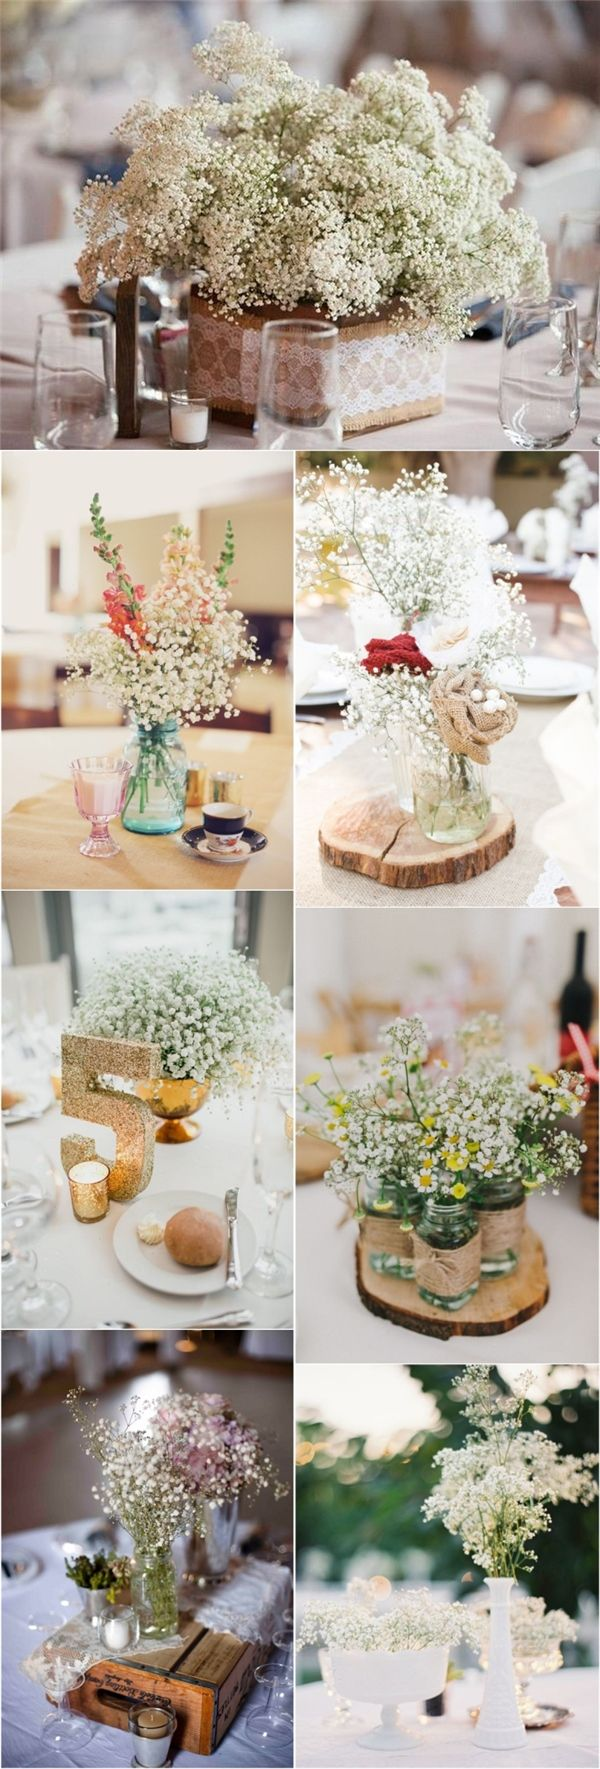 rustic baby breath wedding centerpieces / http://www.deerpearlflowers.com/rustic-budget-friendly-gypsophila-babys-breath-wedding-ideas/3/